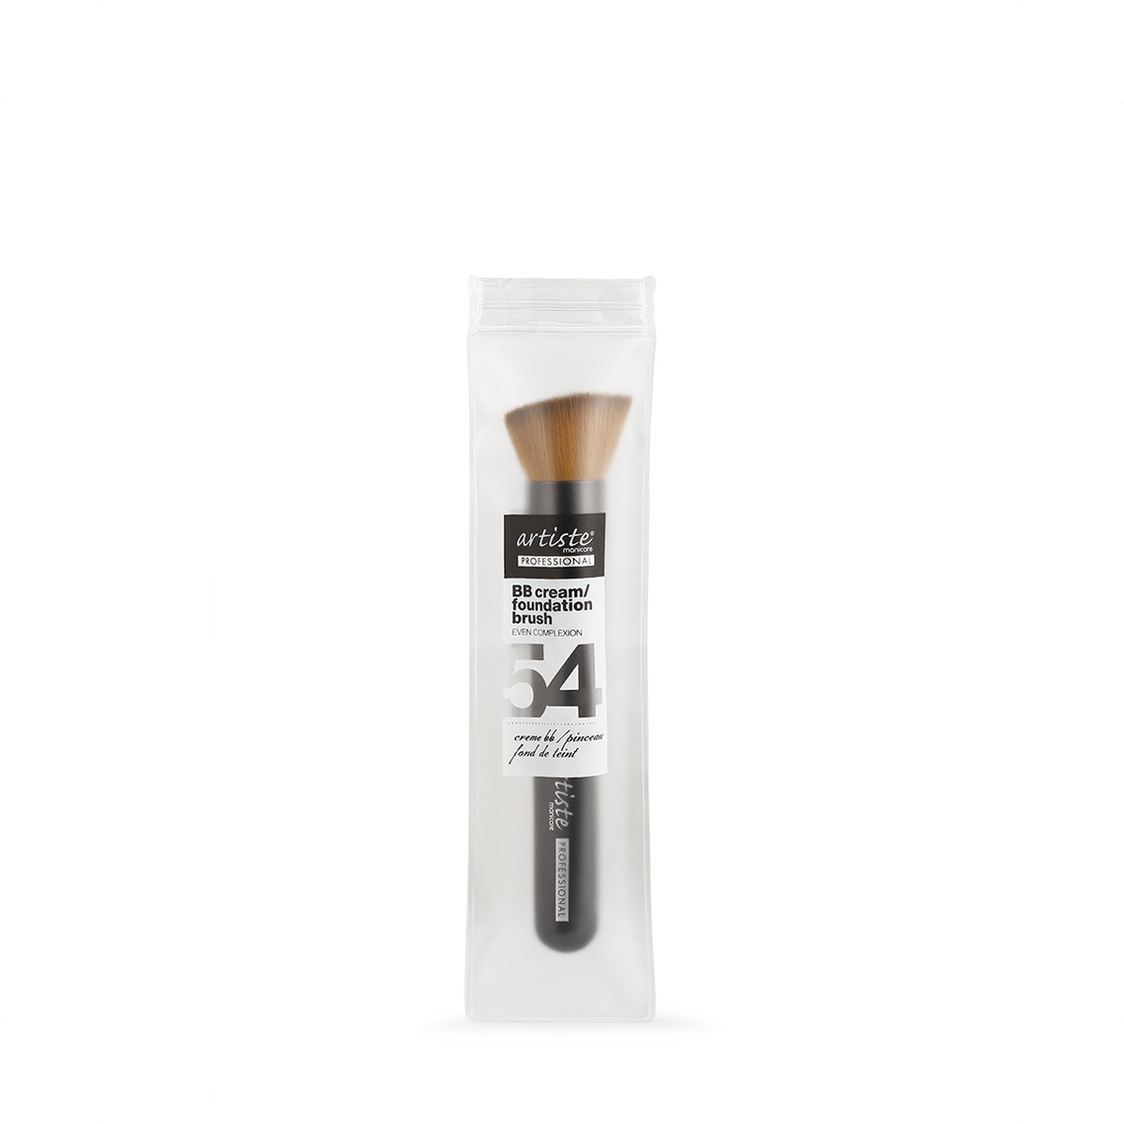 Artiste BB Cream Foundation Brush 54